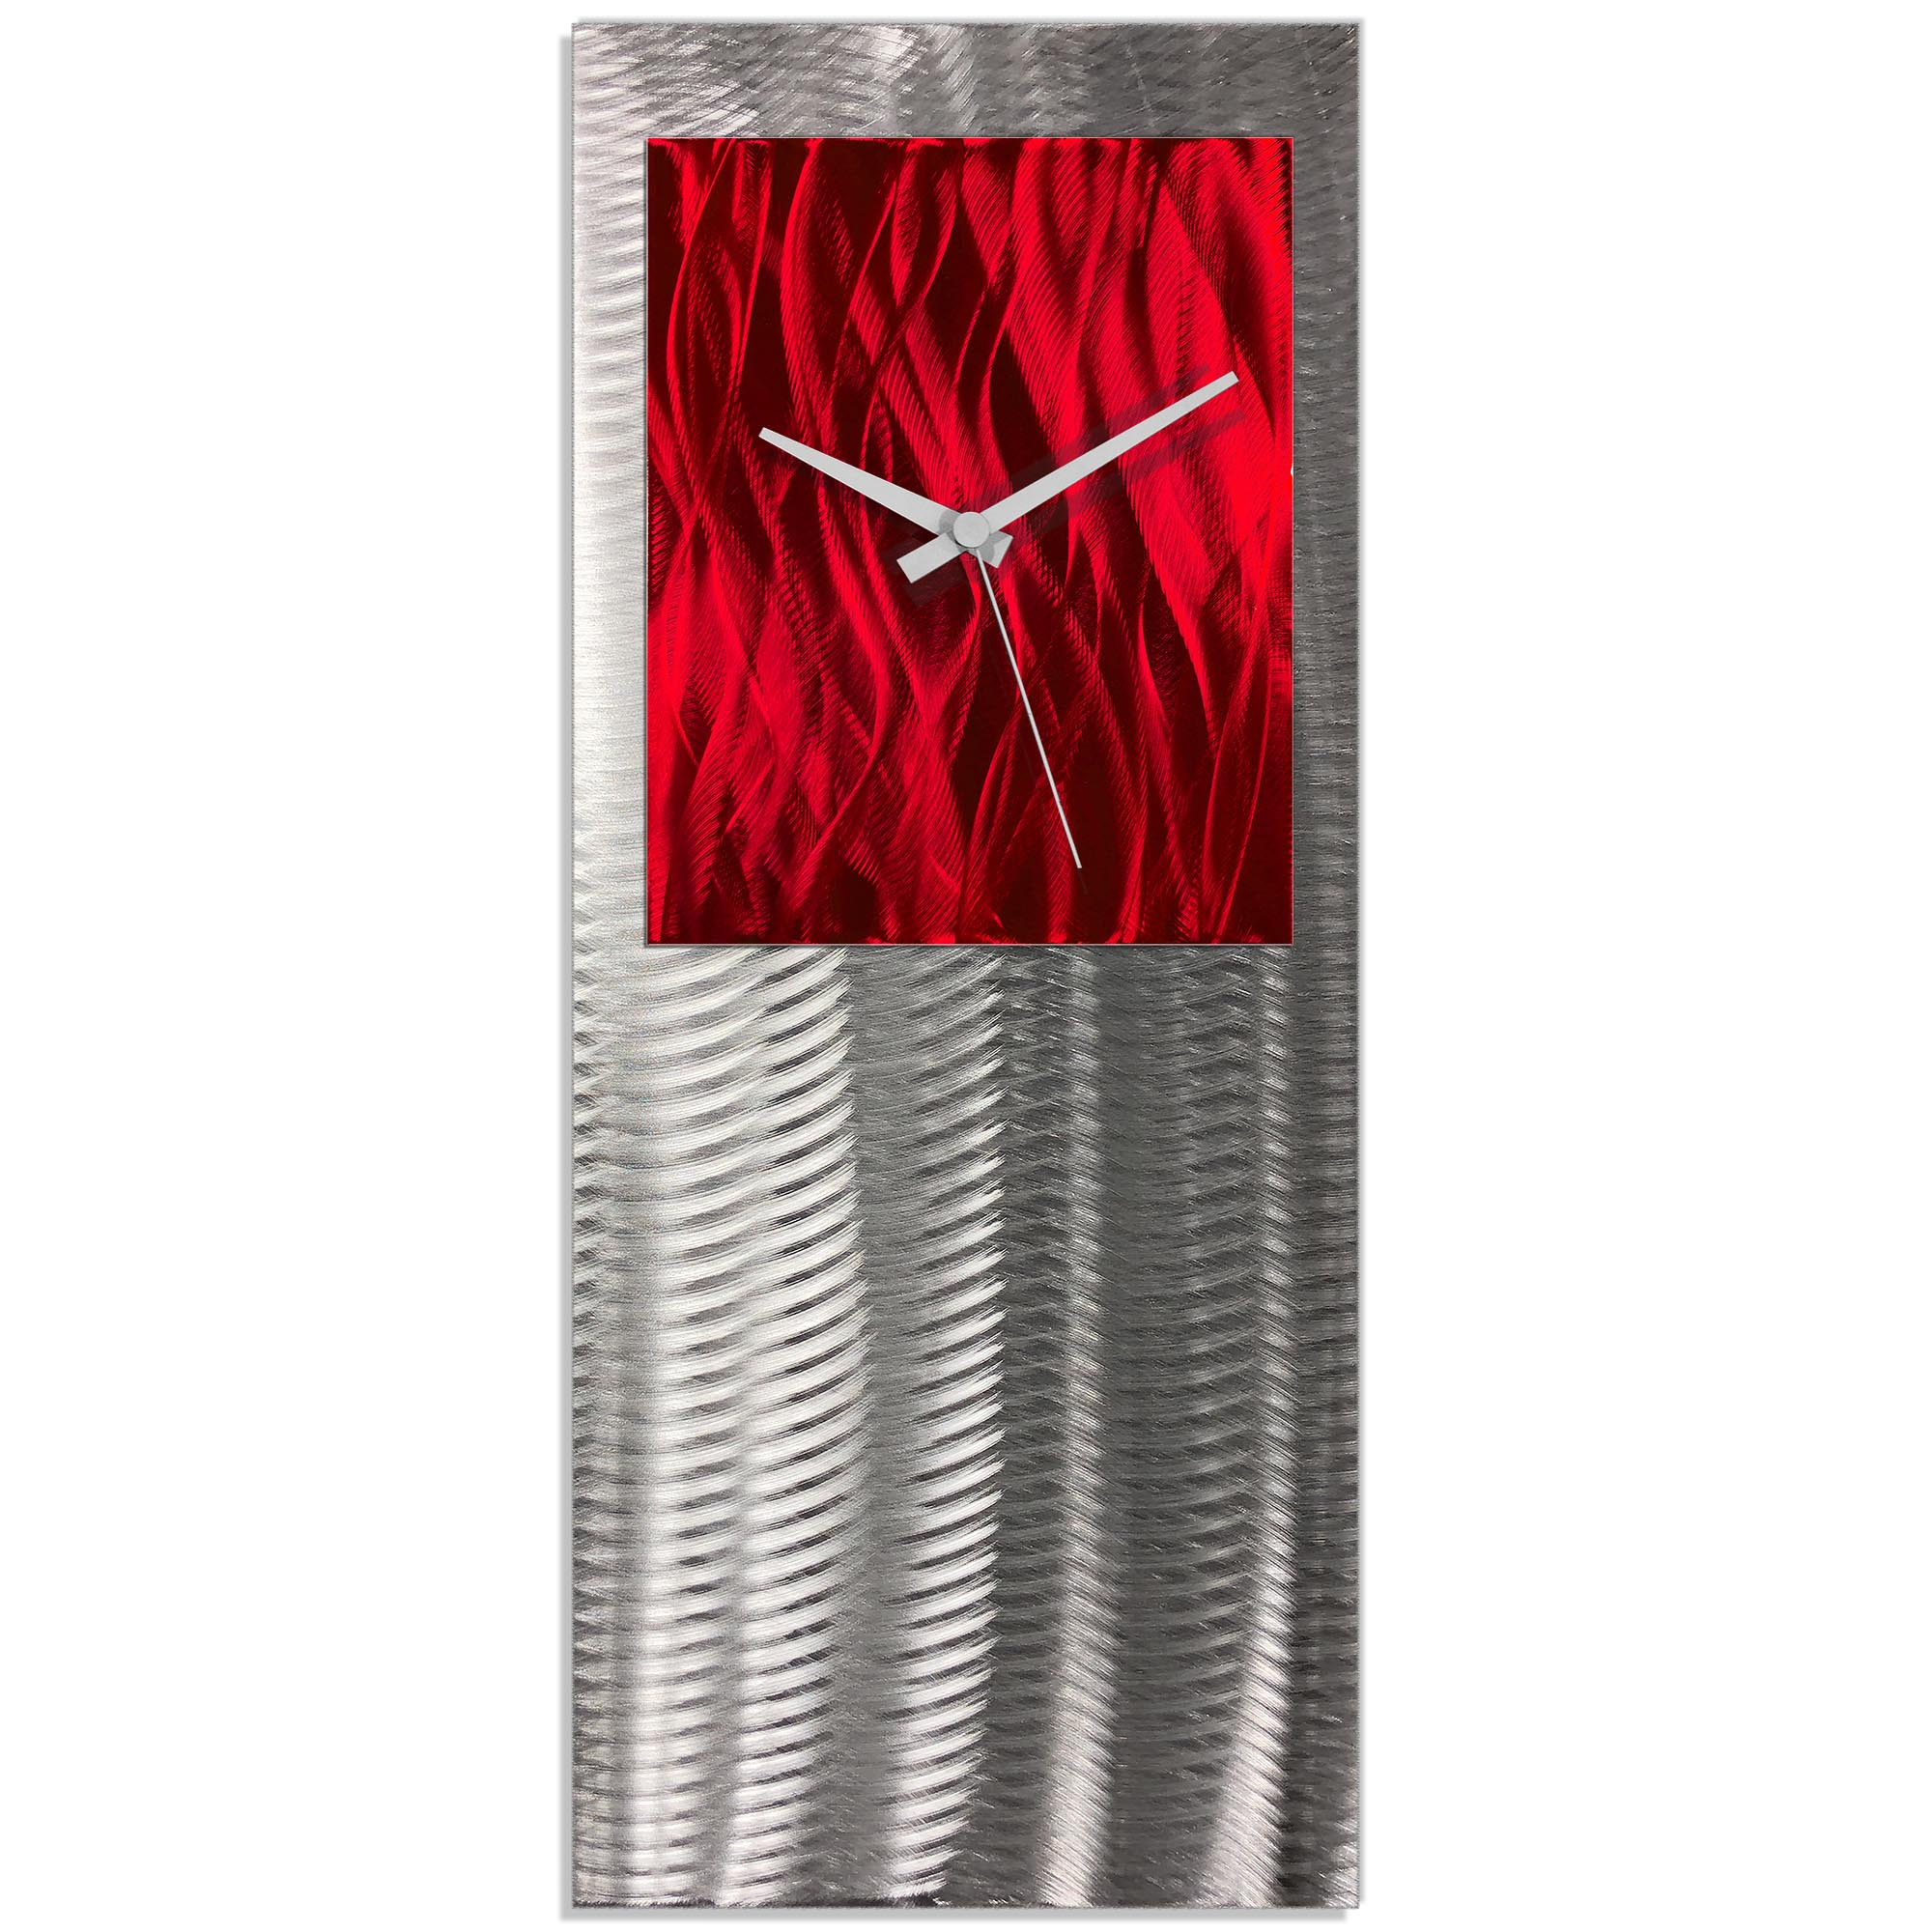 Metal Art Studio Abstract Decor Red Studio Clock 10in x 24in